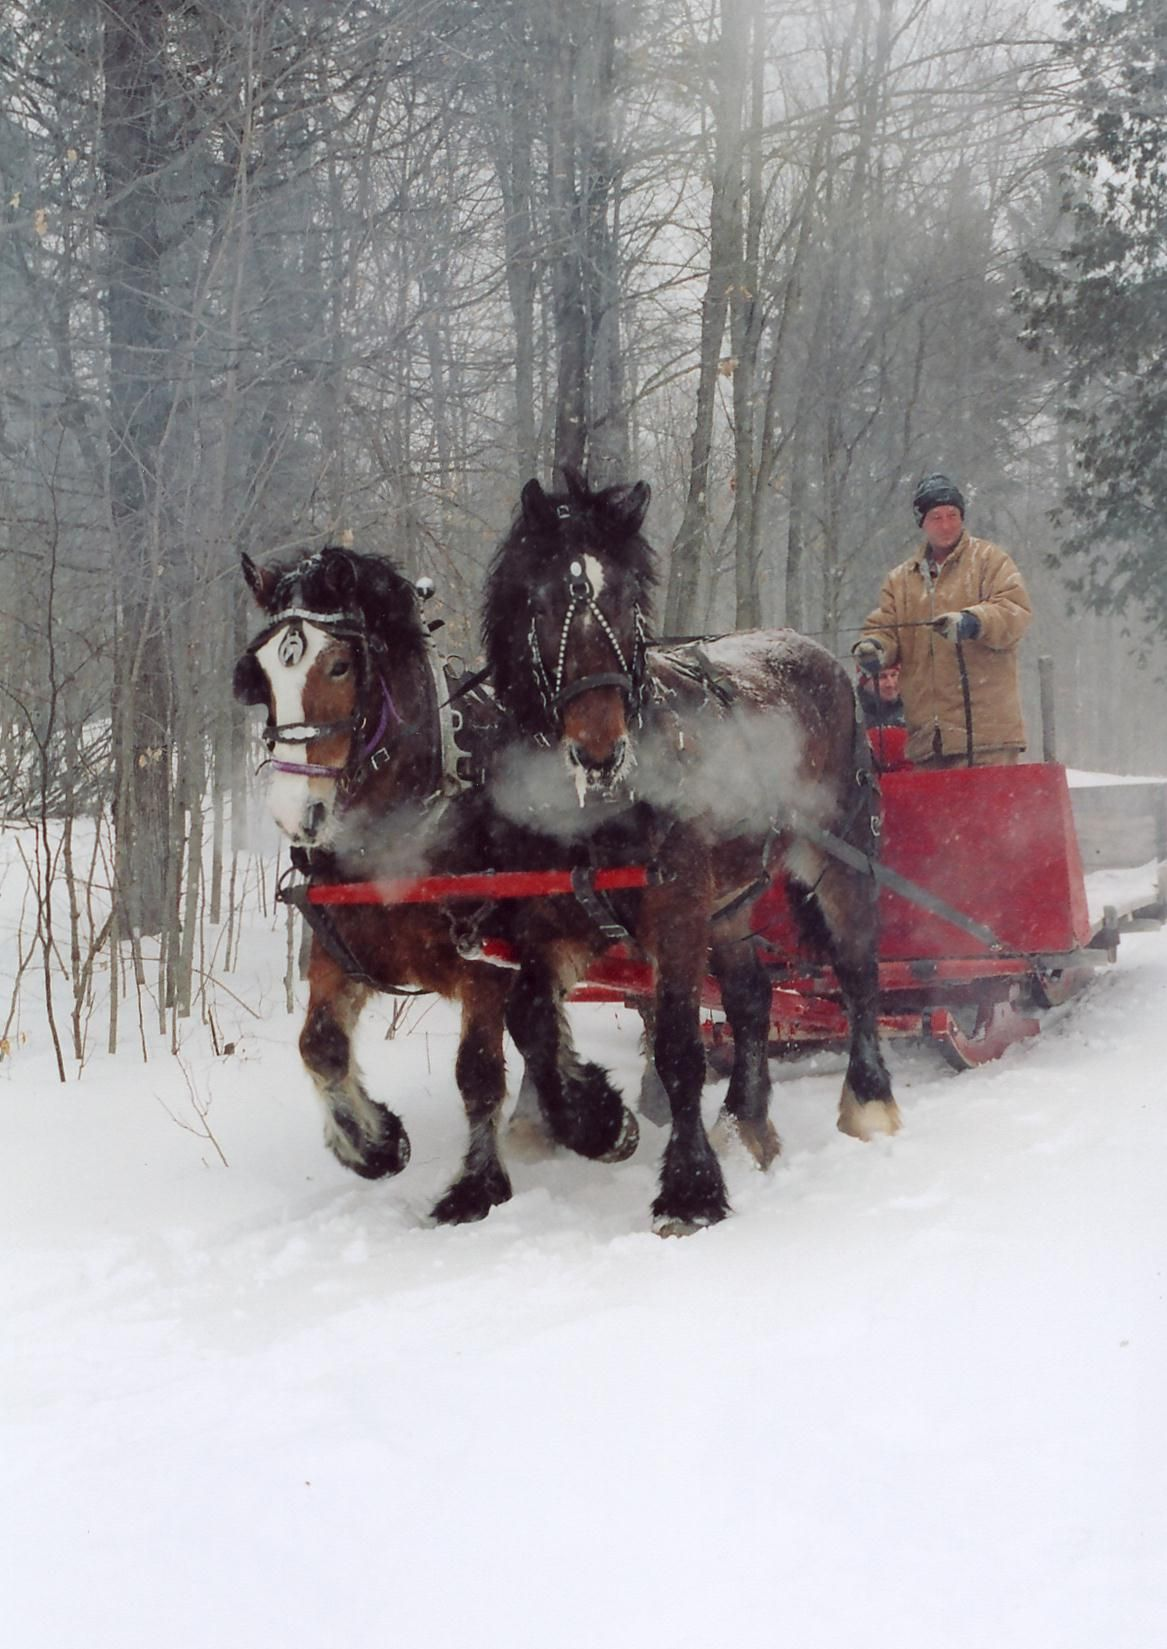 VINTAGE CHRISTMAS CARD Old Fashioned Horse Drawn Sleigh ... |Horse Drawn Sleigh Rides Christmas